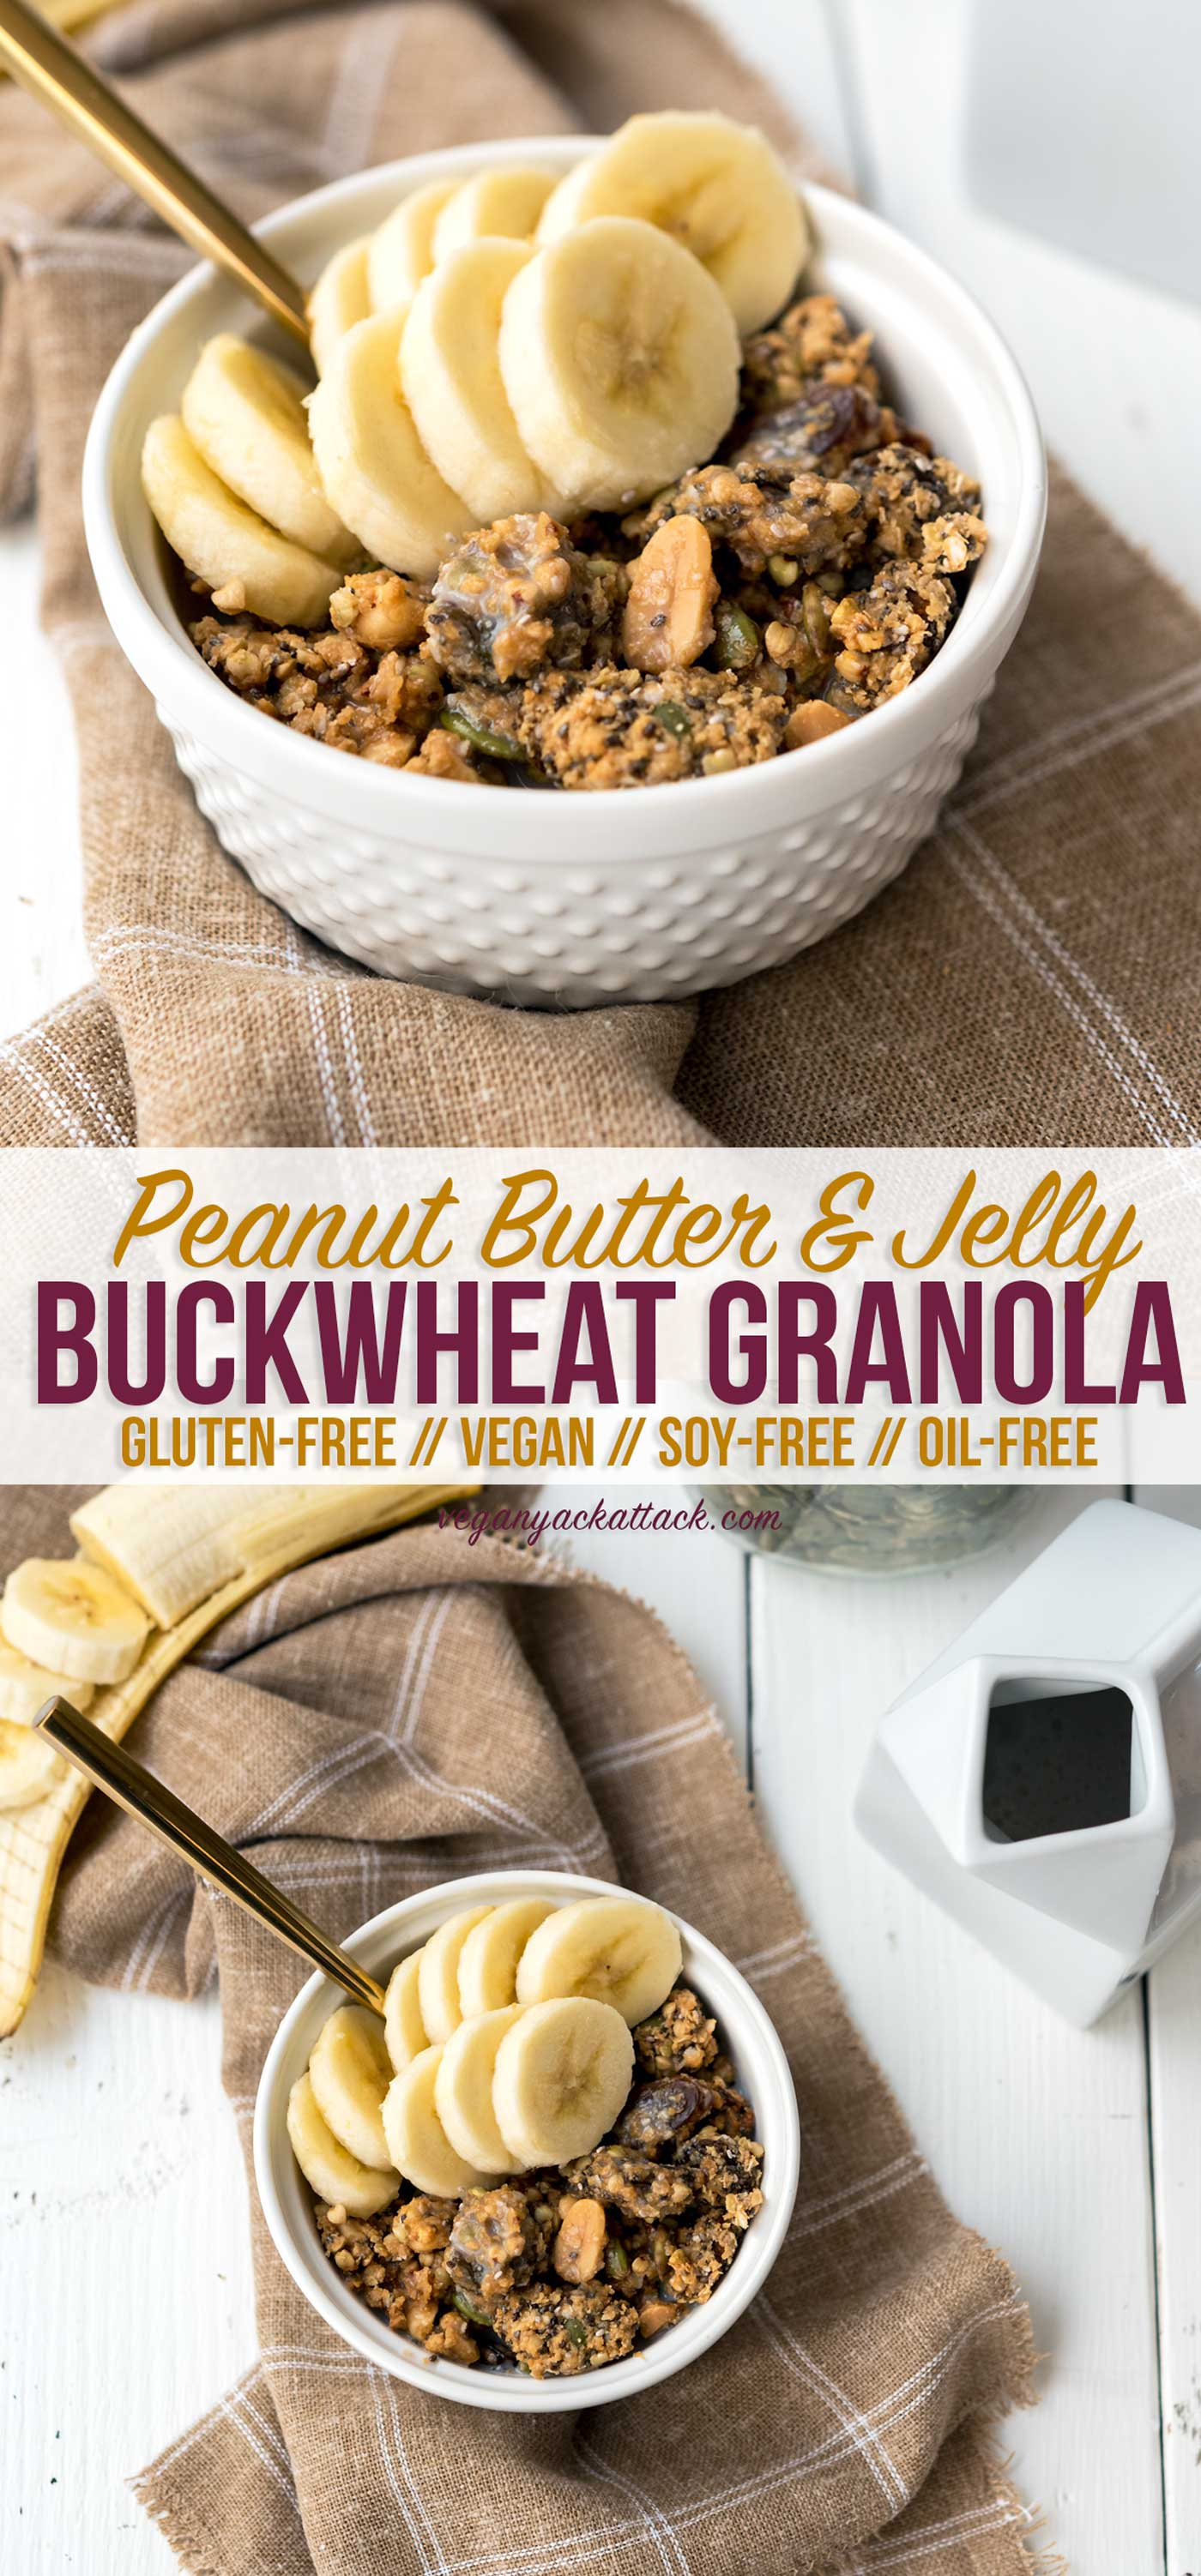 This snack is anything but boring! PB&J Buckwheat Granola, that's oil-free and gluten-free. Plus, it's a great way to empty out some of your pantry! #vegan #glutenfree #oilfree